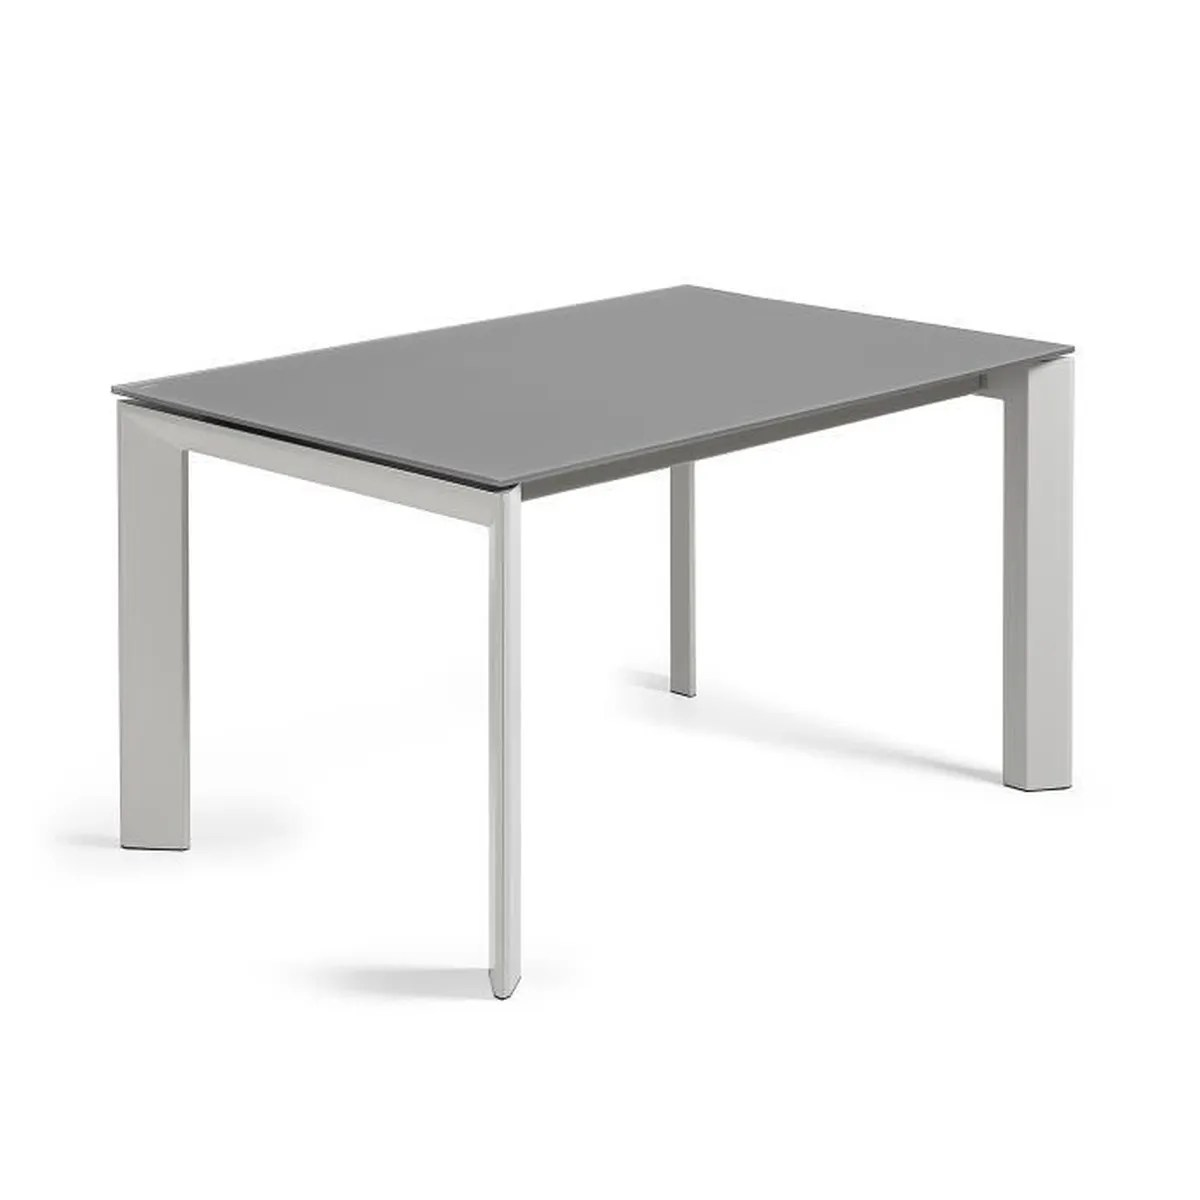 Table à Manger 140 X 90 Table Extensible Axis Gris 140 200 X90 Cm Achat Vente Table